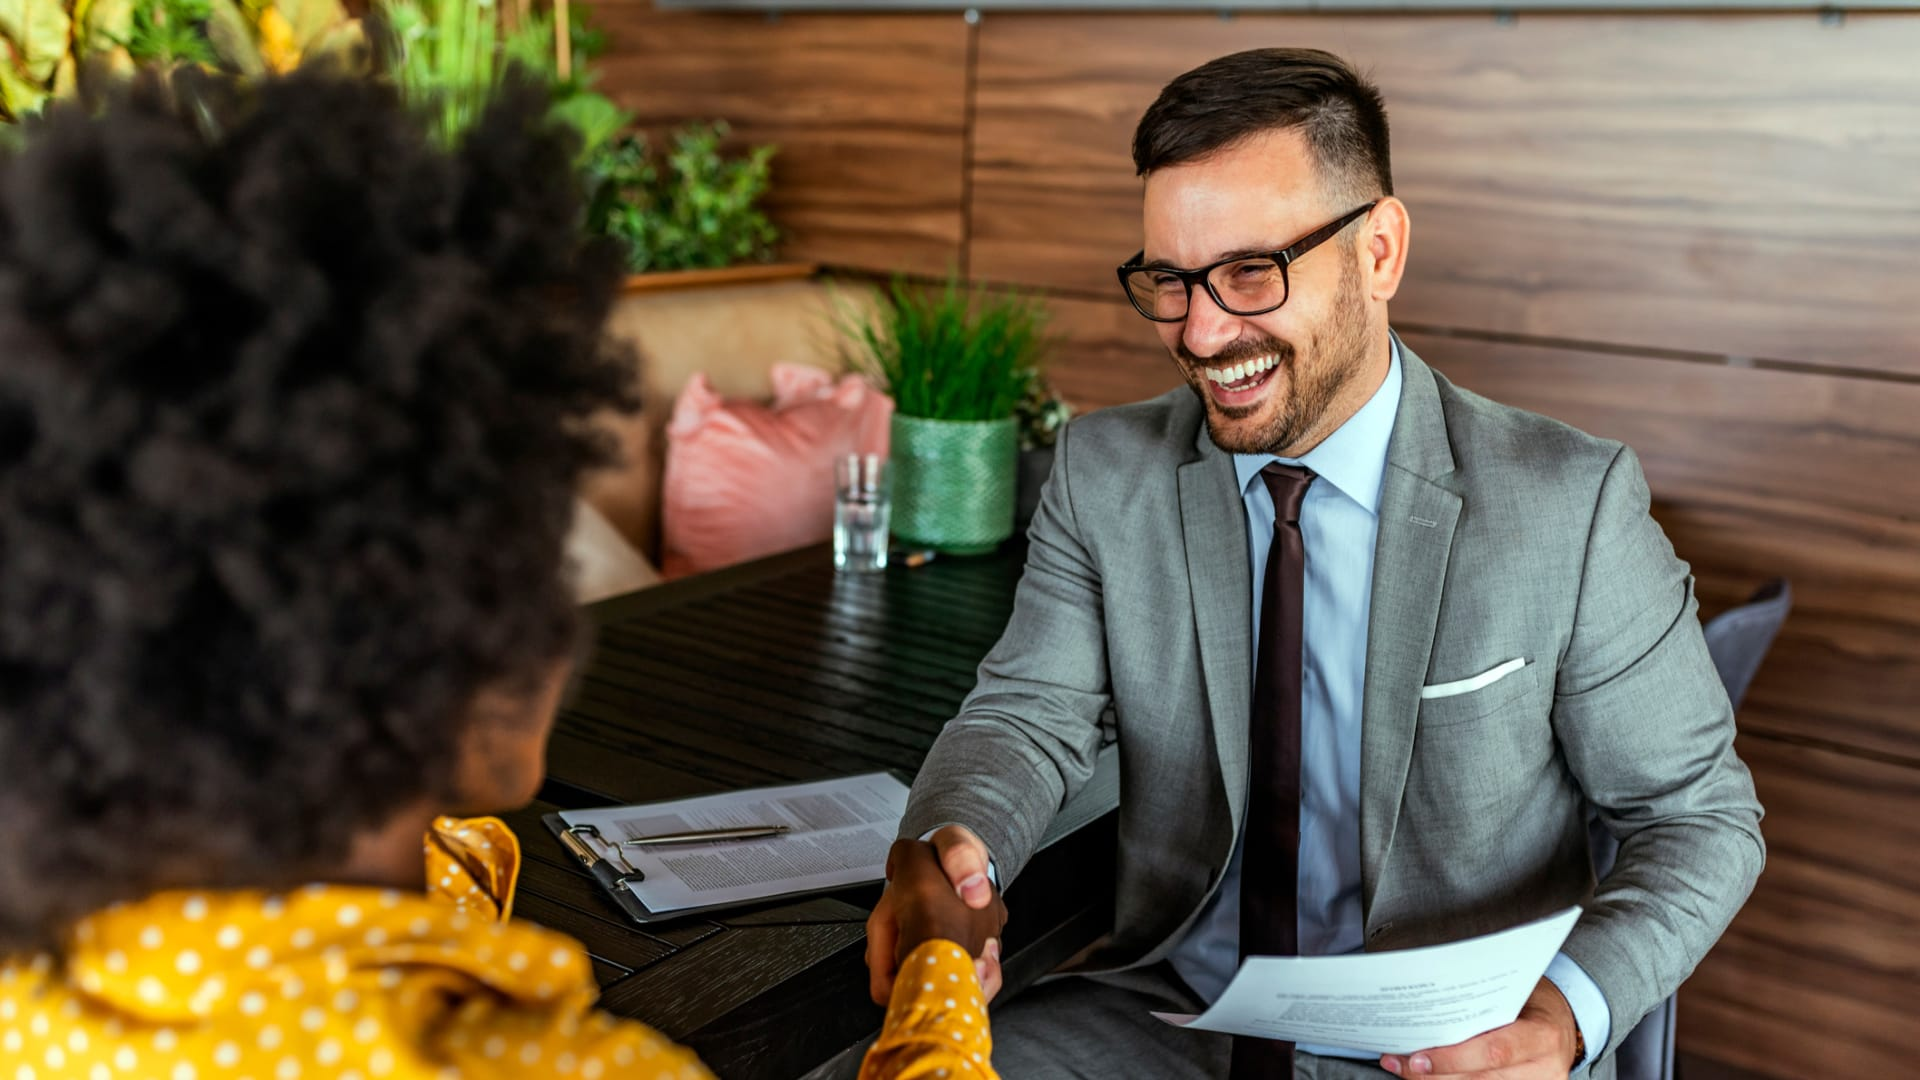 Confidence Often Wins Over Competence in Job Interviews, New Stanford Study Shows